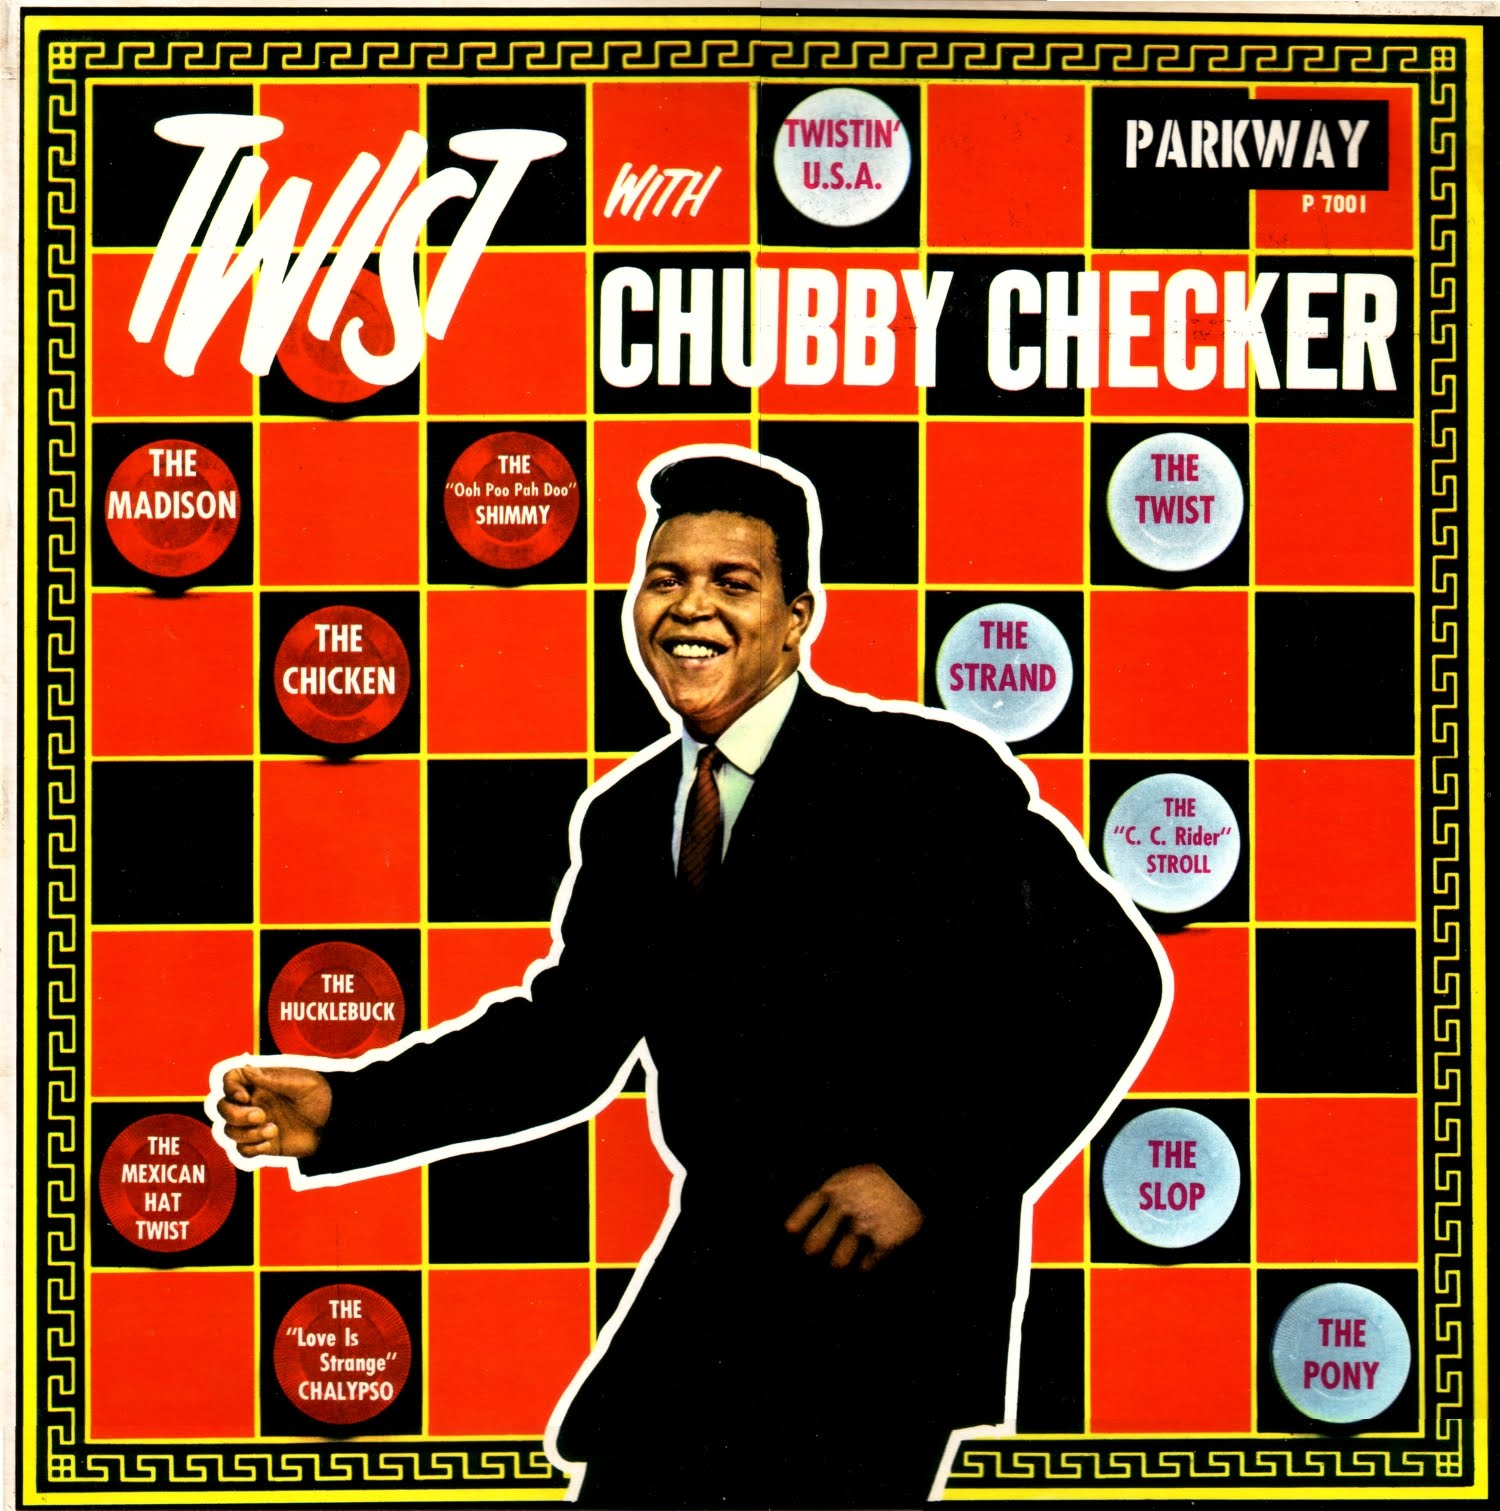 Who is chubby checker agree